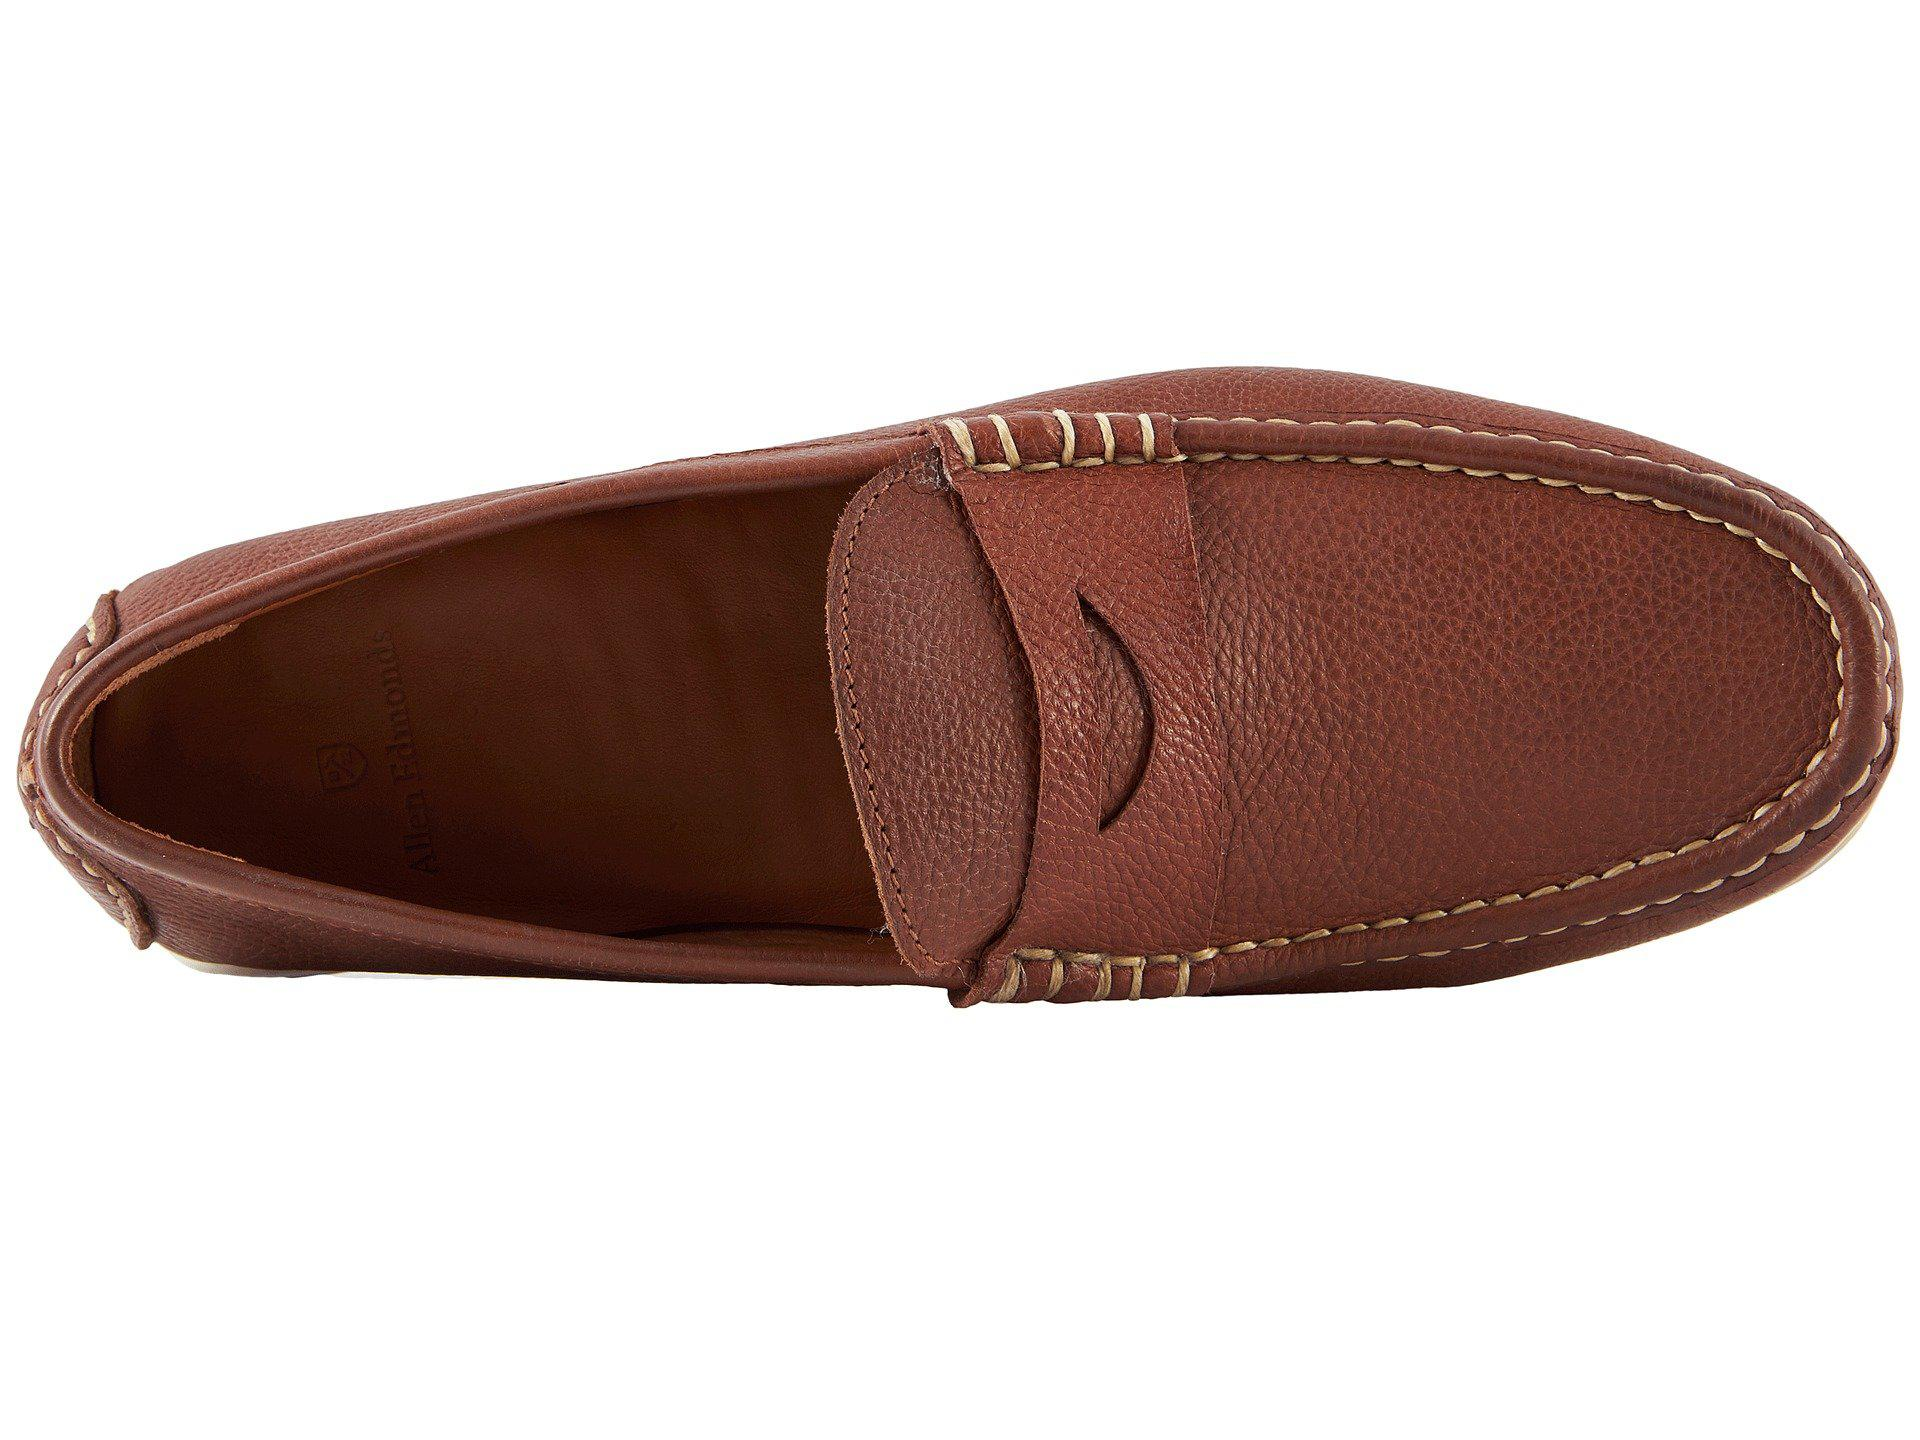 5e810aa51b3 Allen Edmonds - Brown Turner Penny for Men - Lyst. View fullscreen